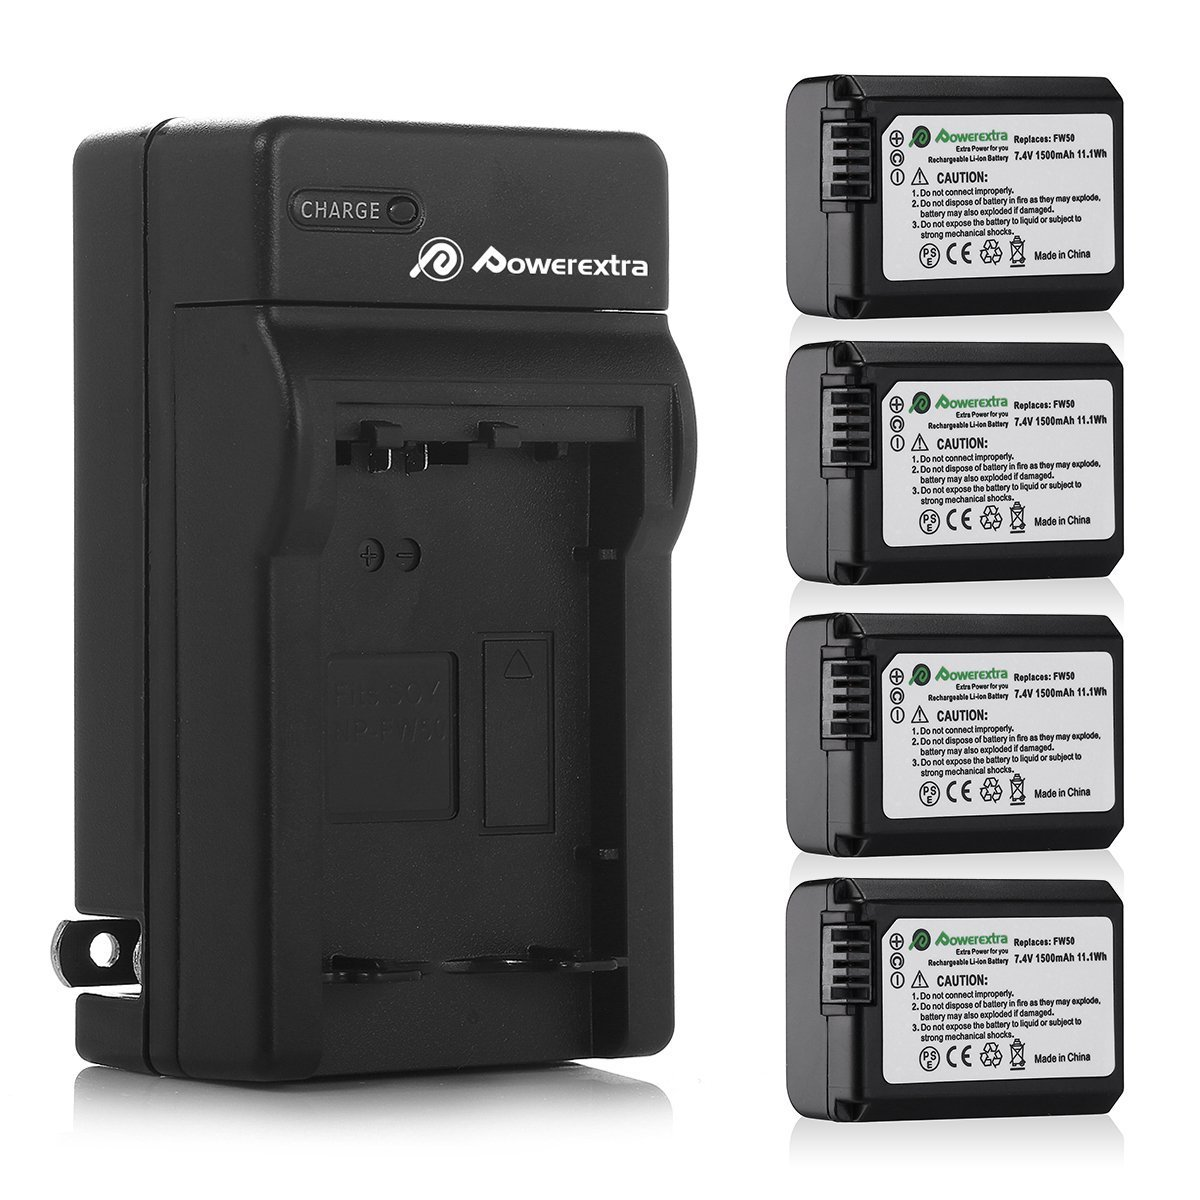 Powerextra Battery (4-Pack) and Charger for Sony NP-FW50 and Sony Alpha a6500, Alpha a6300, Alpha a6000, Alpha a7 II, Alpha a7R II, Alpha a7S II, Alpha a5000, Alpha a5100 Digital Camera by Powerextra